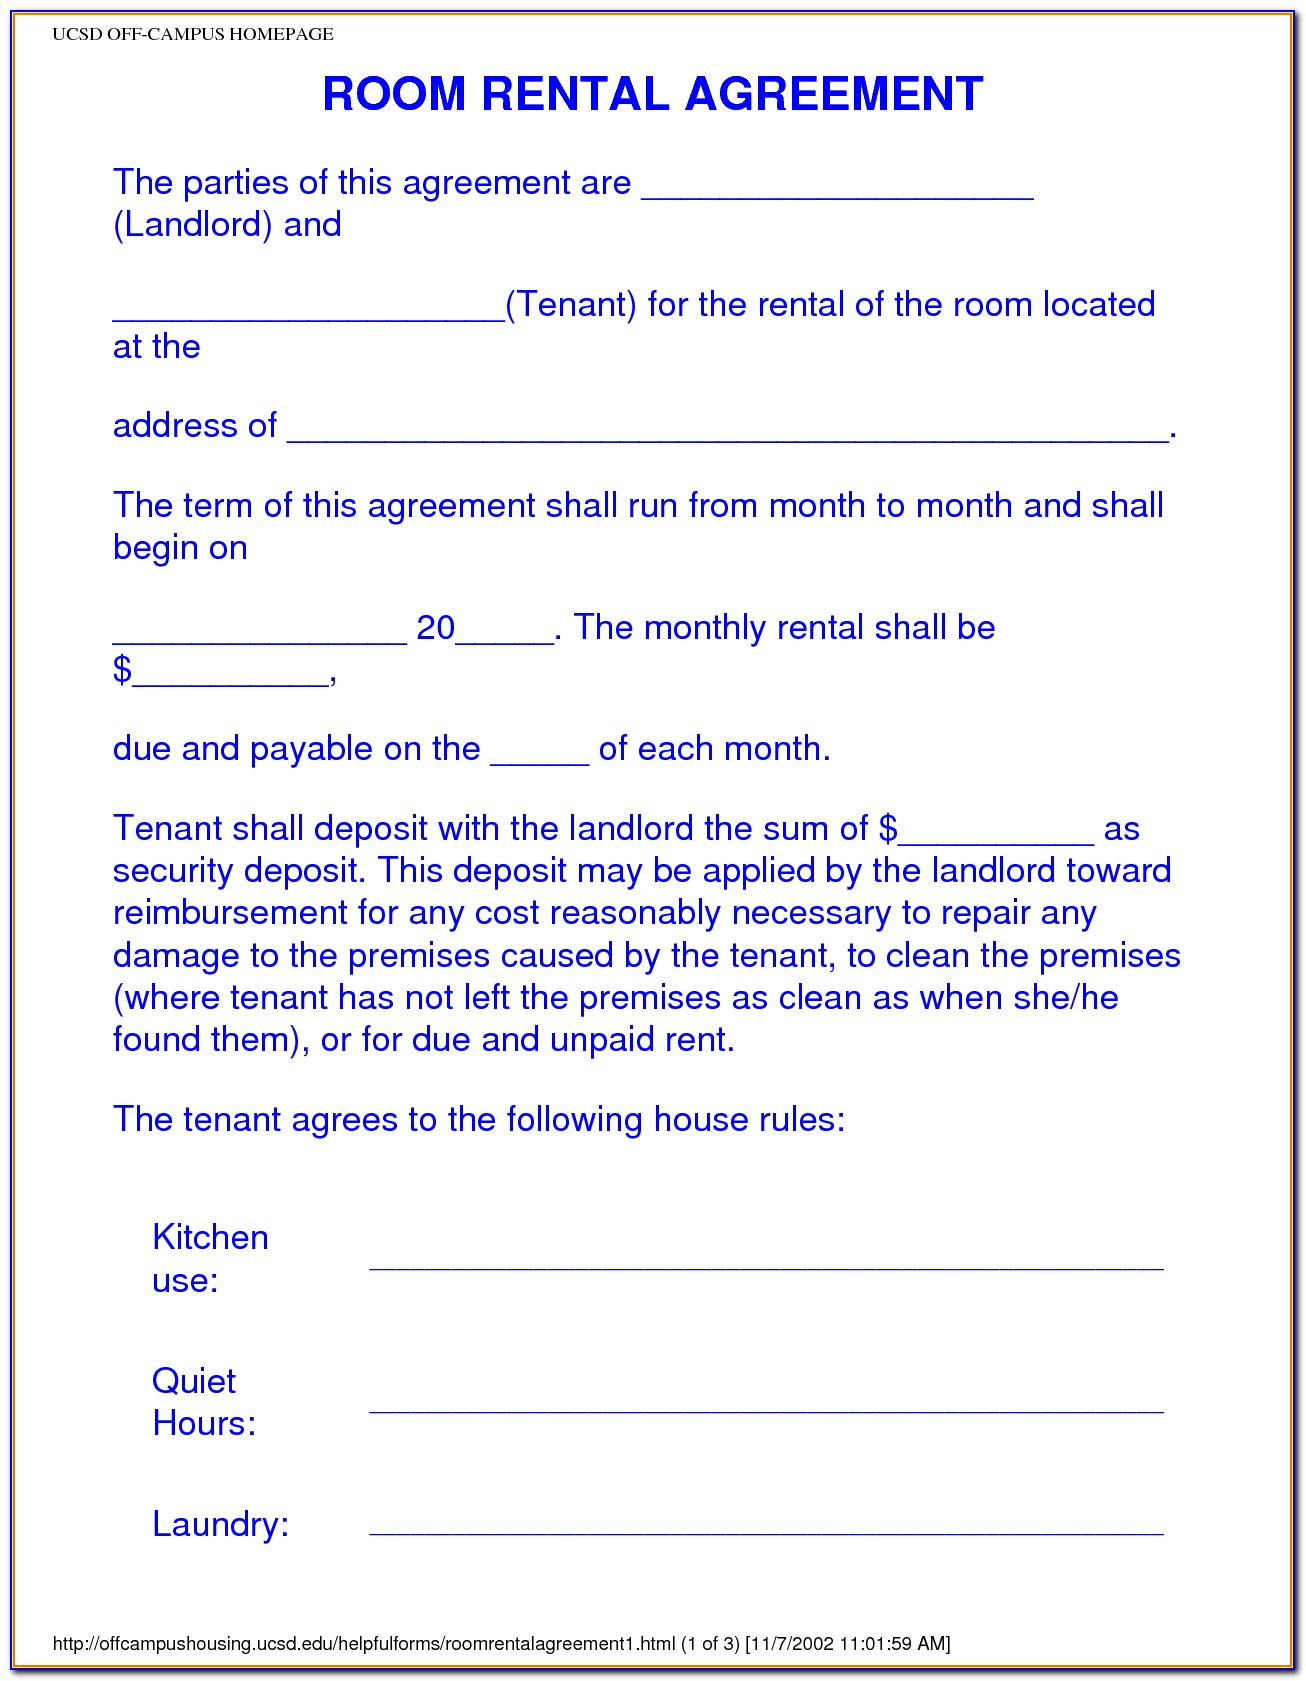 Free Room Rental Agreement Template Uk